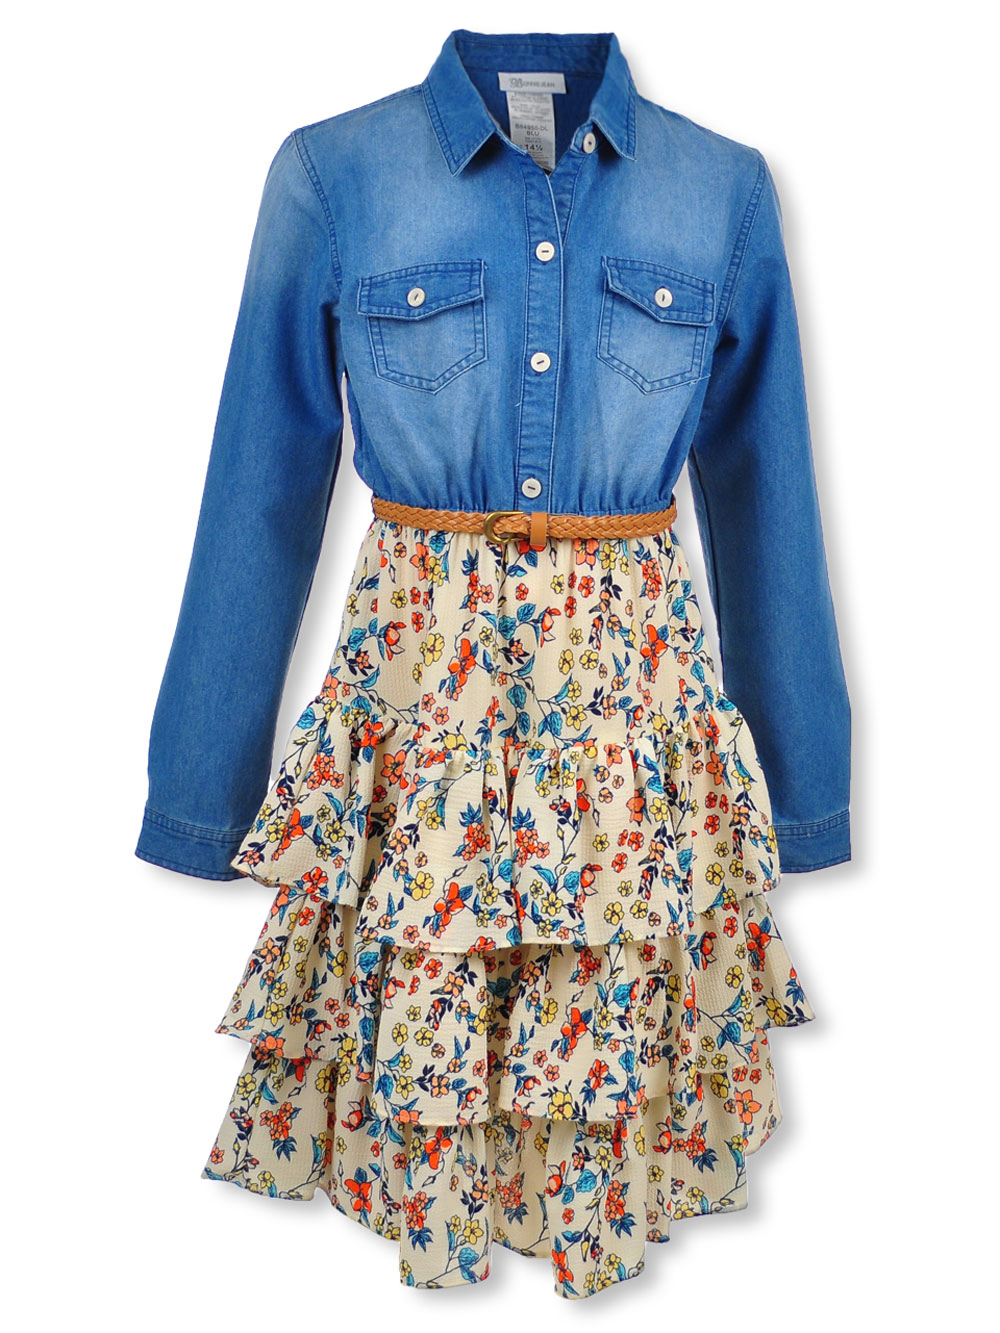 Plus Size Chambray & Layered Flounce Belted Dress by Bonnie Jean in Blue